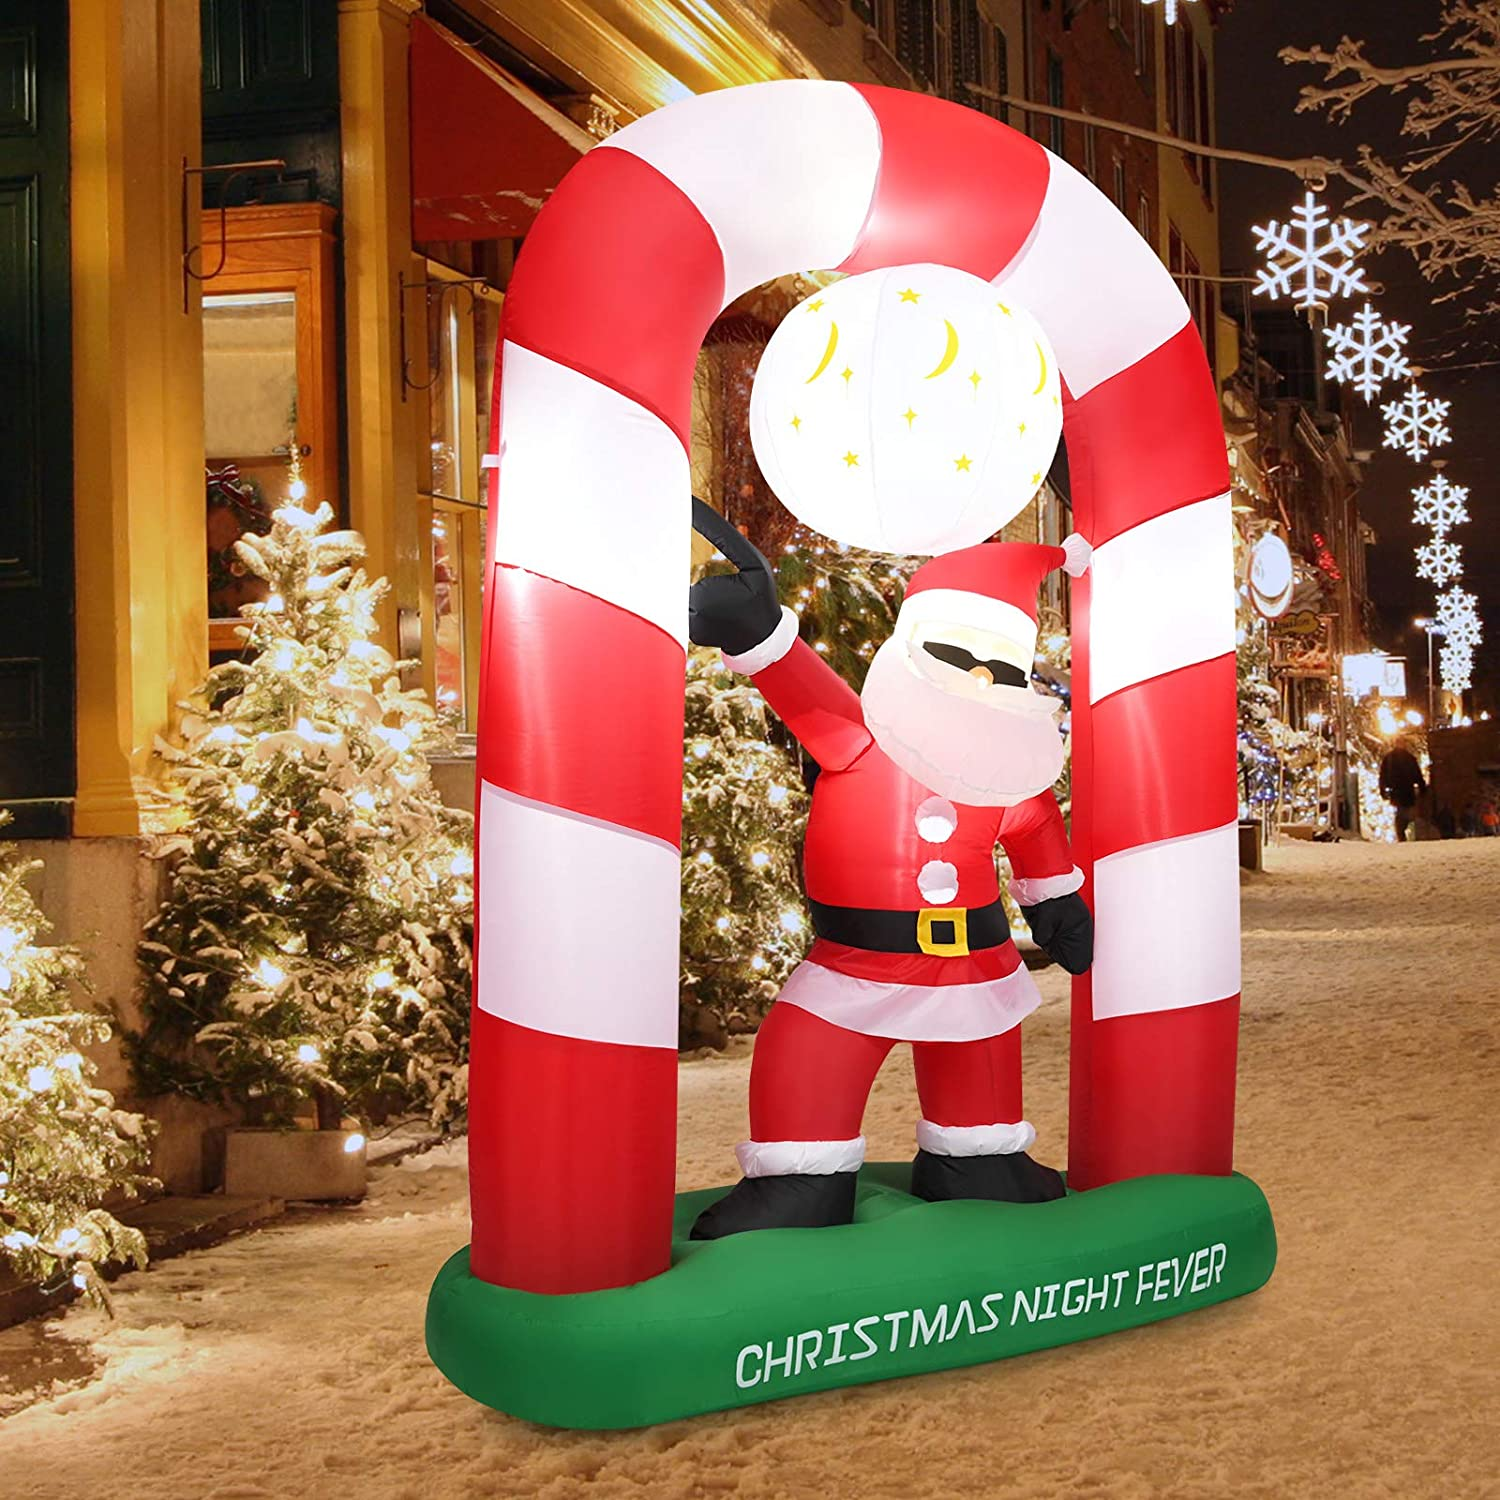 Tangkula 8 Ft Inflatable Christmas Stocking Arch with Disco Santa Claus, Blow Up Lighted Interior with Fan and Anchor Ropes, Indoor Outdoor Garden Yard Family Prop Decoration